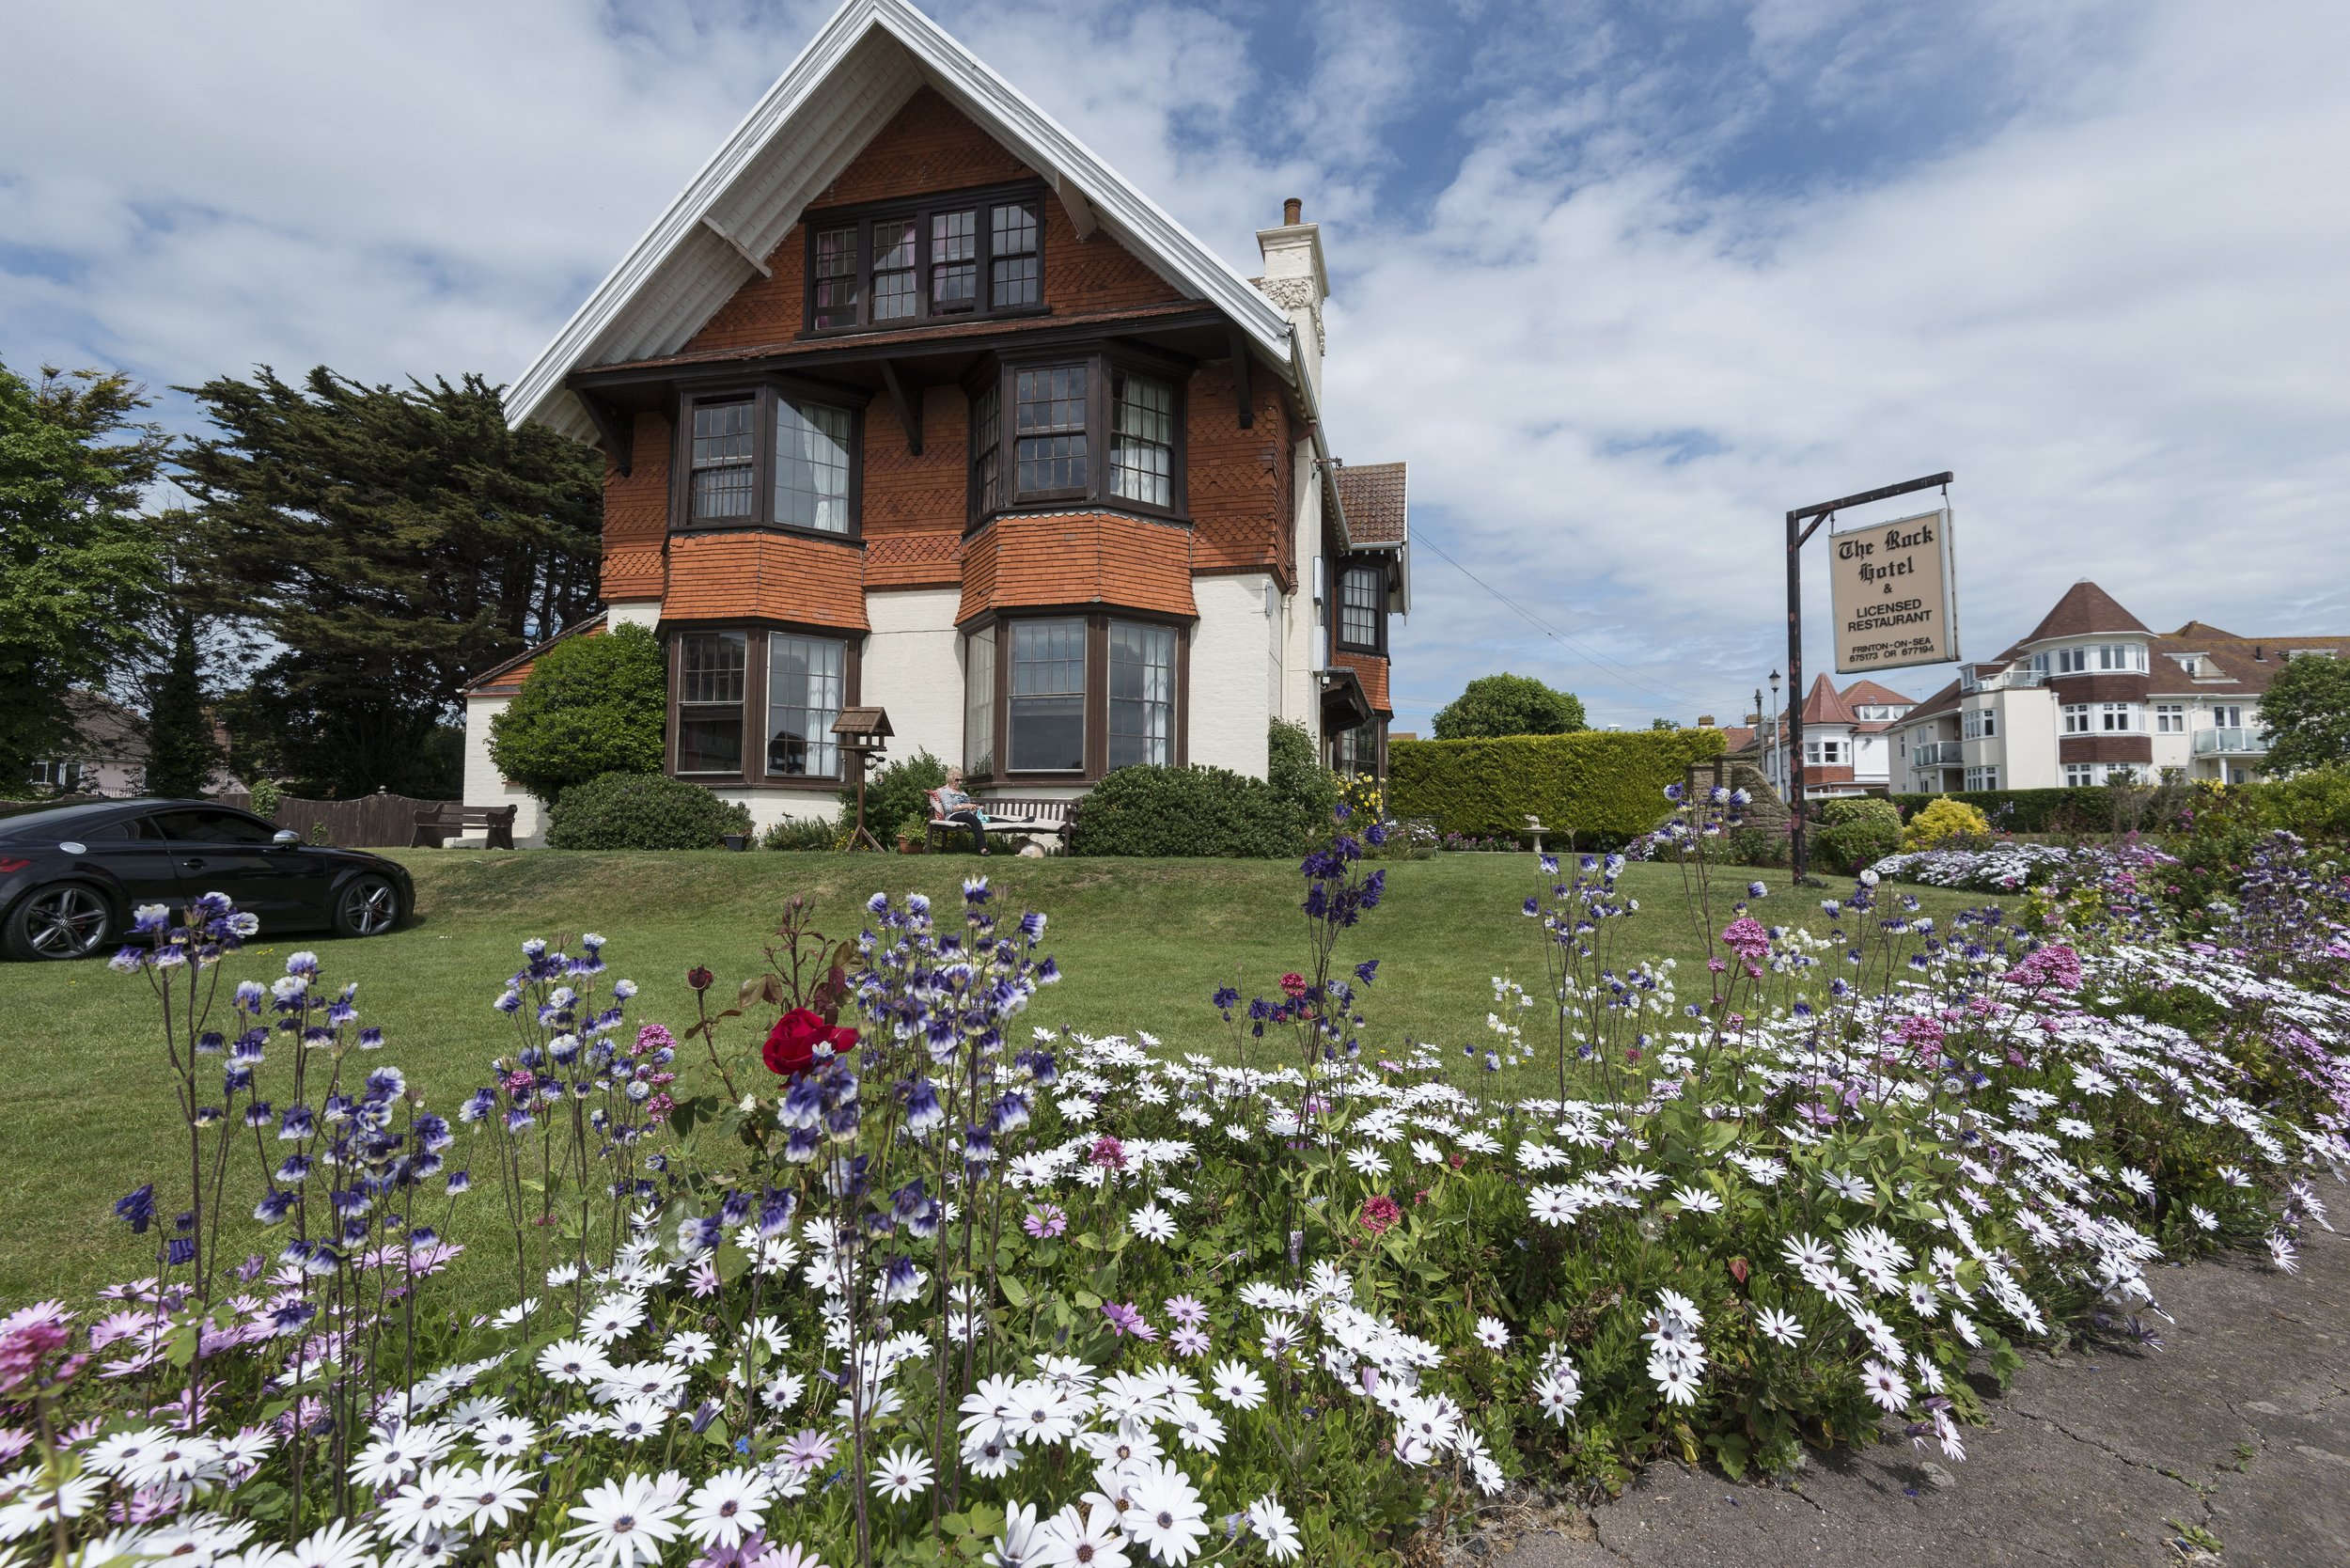 The Rock Hotel, Frinton